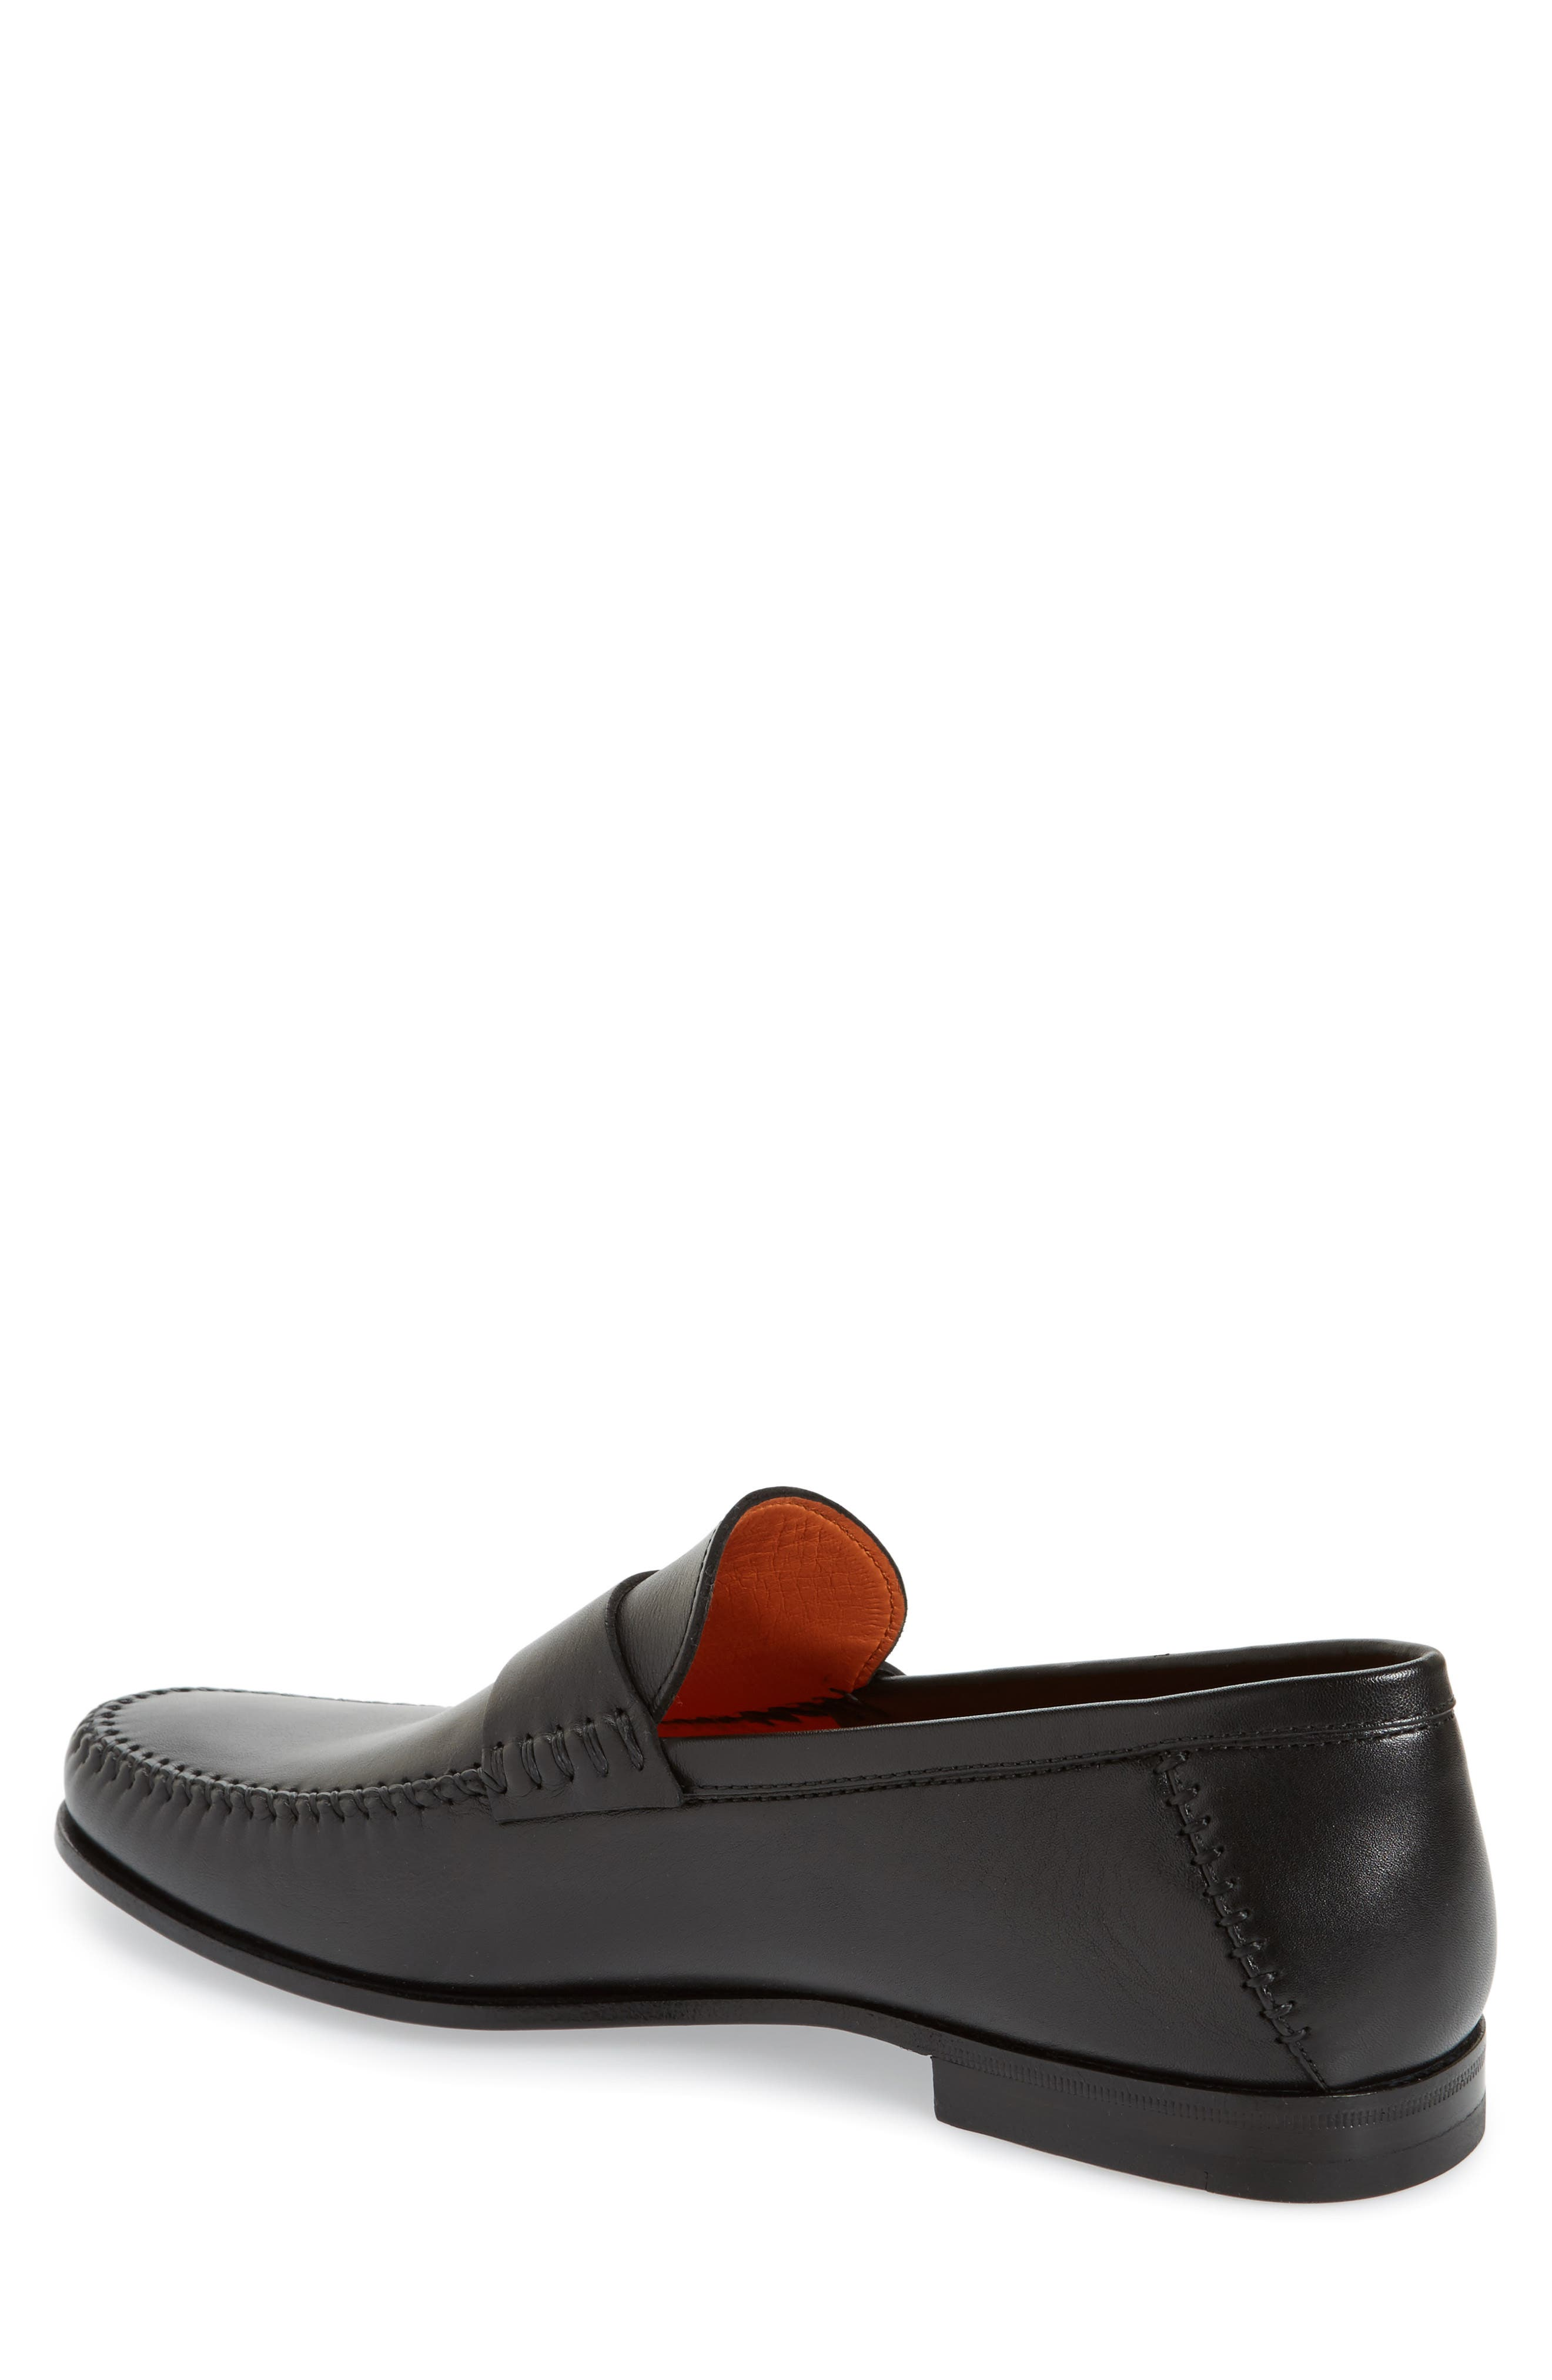 'Paine' Loafer,                             Alternate thumbnail 2, color,                             002